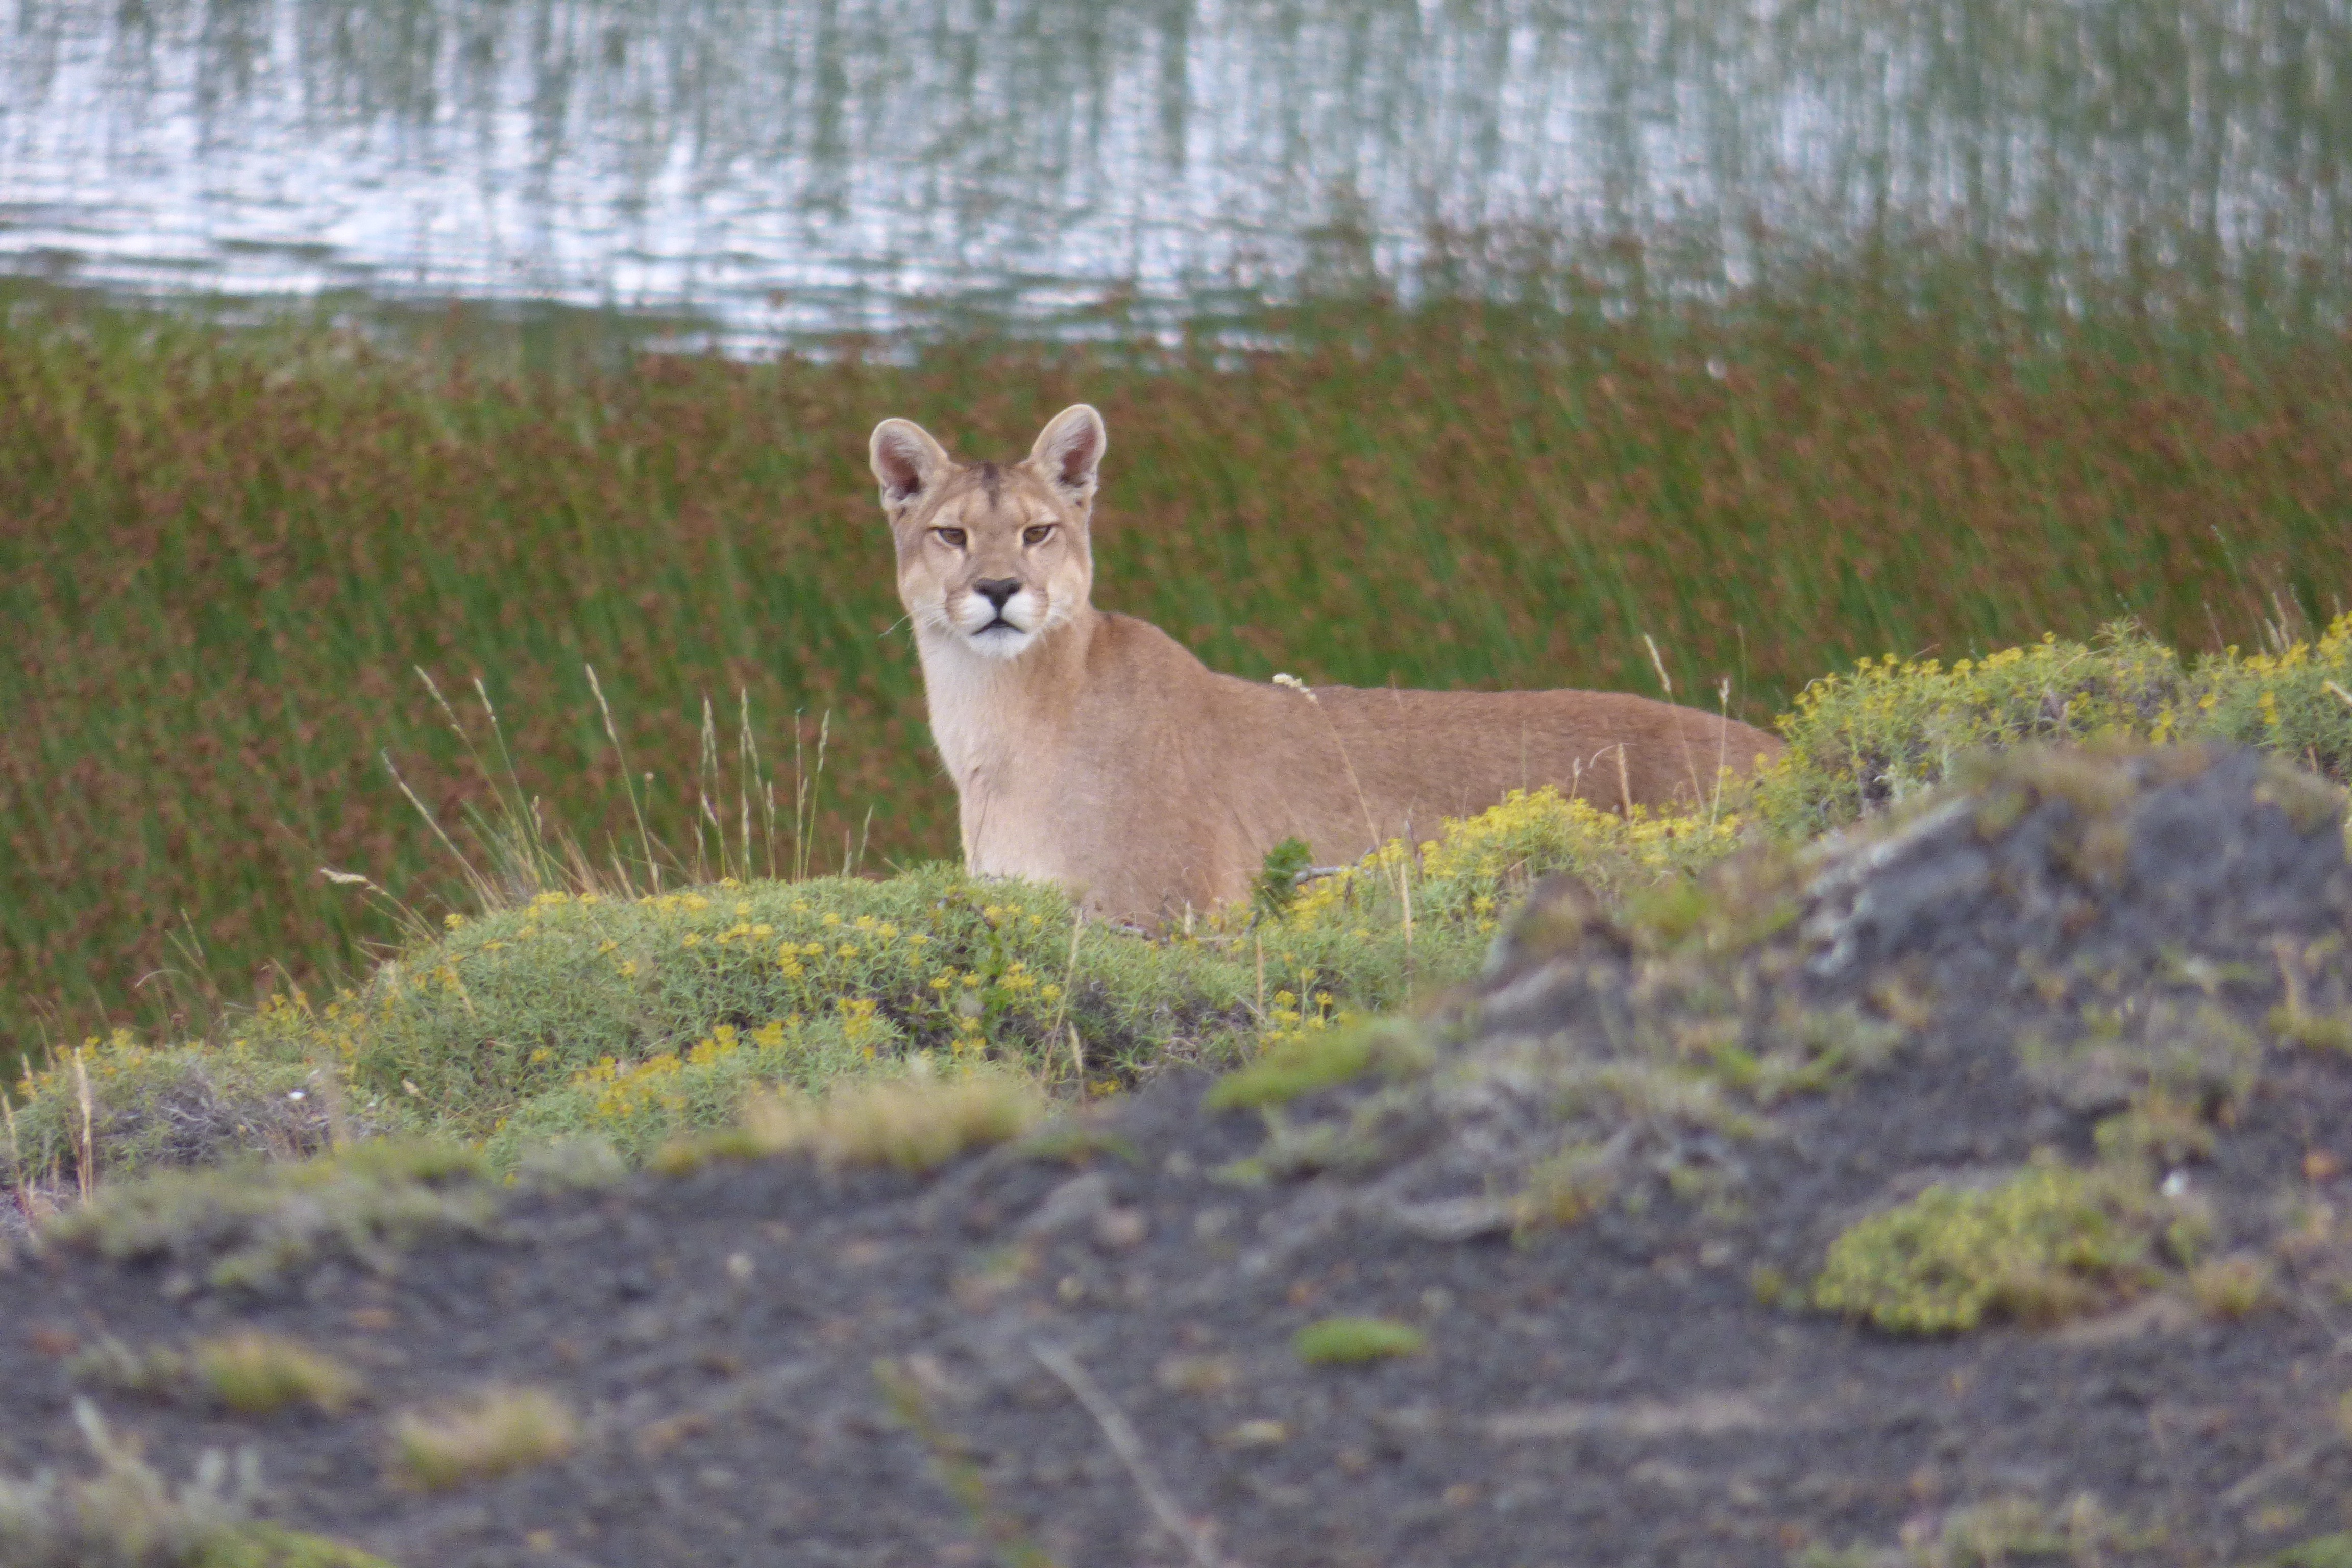 Pumas are not unusual in Patagonia, one of many reasons we recommend hiking with a guide. <em>Photo credit: Luis